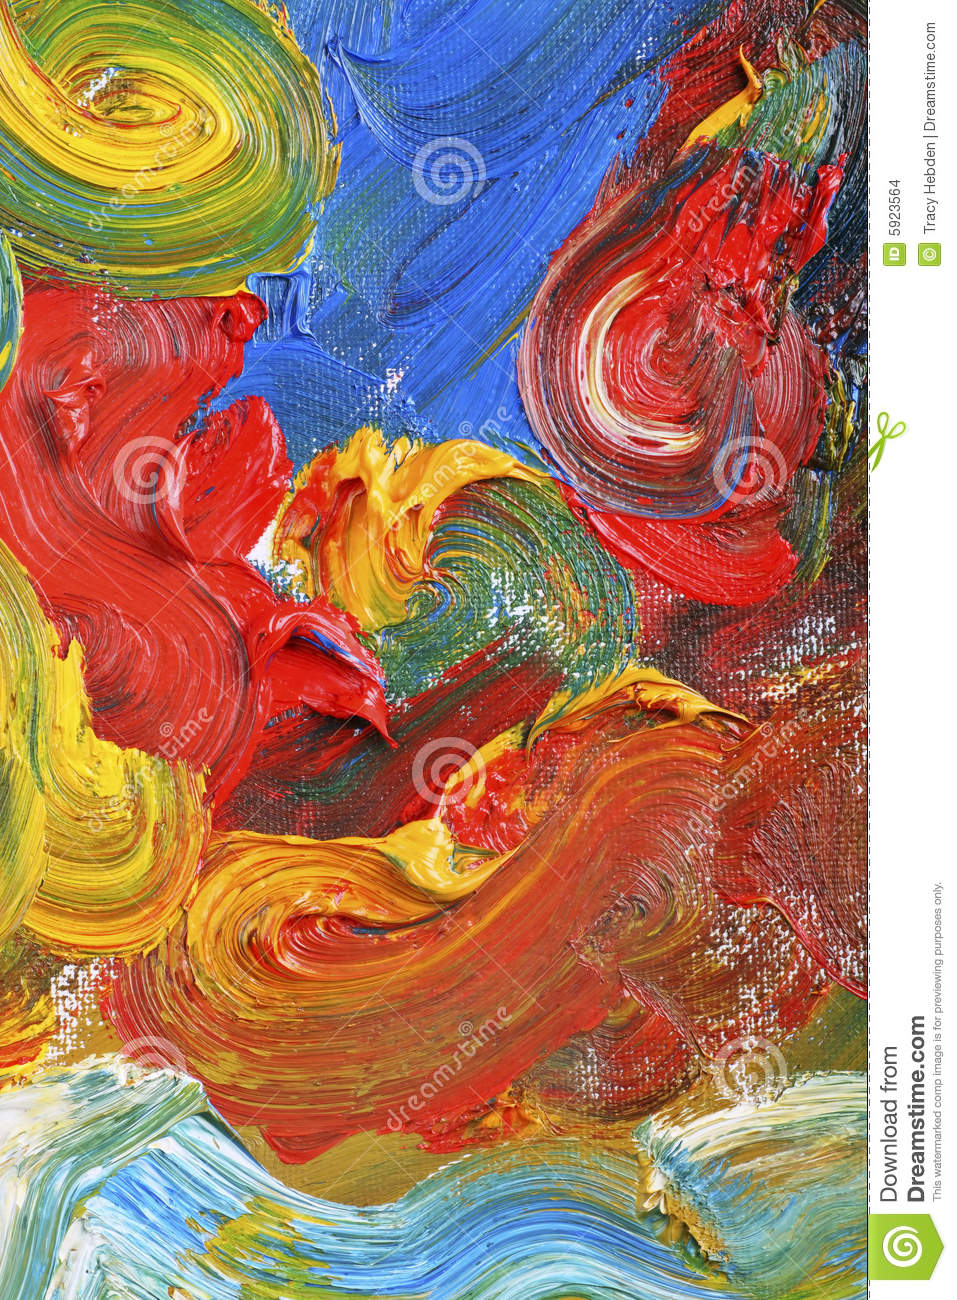 Artists abstract oil painting